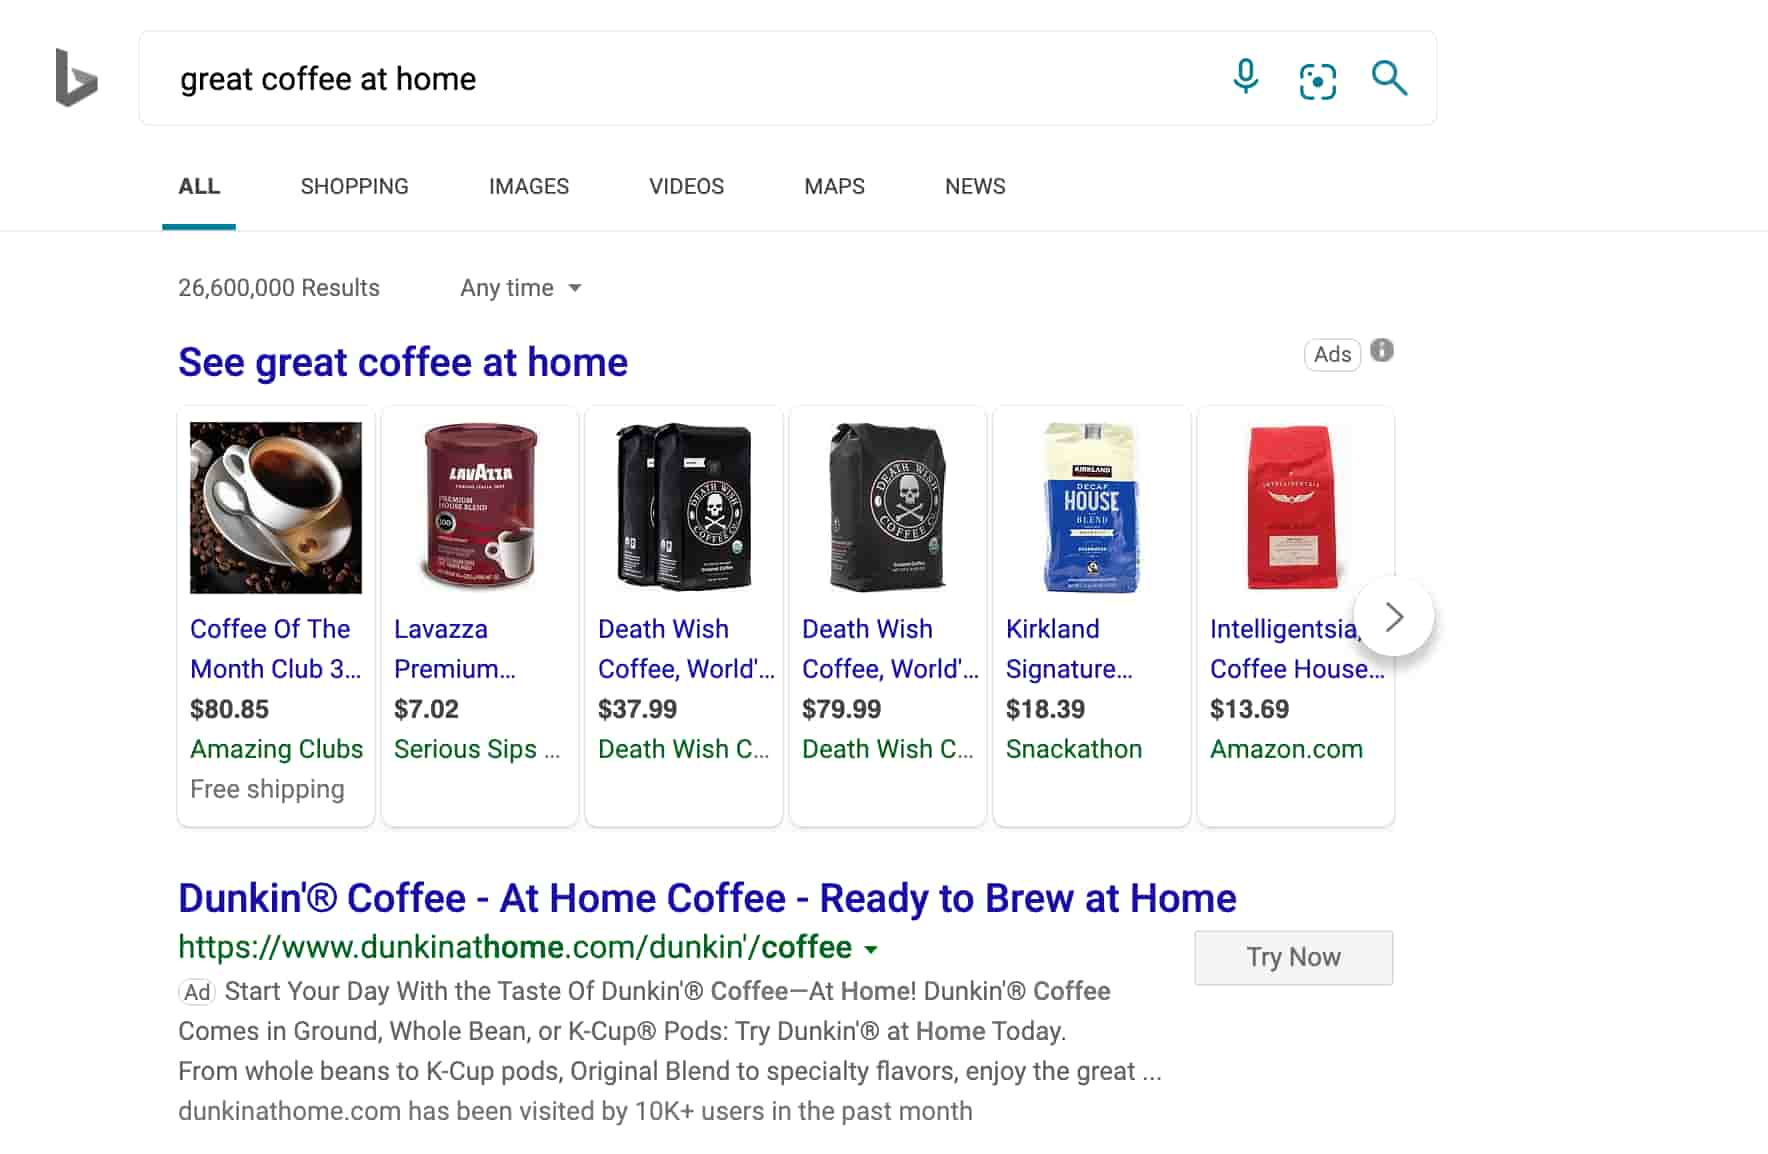 great coffee at home bing ppc ad example